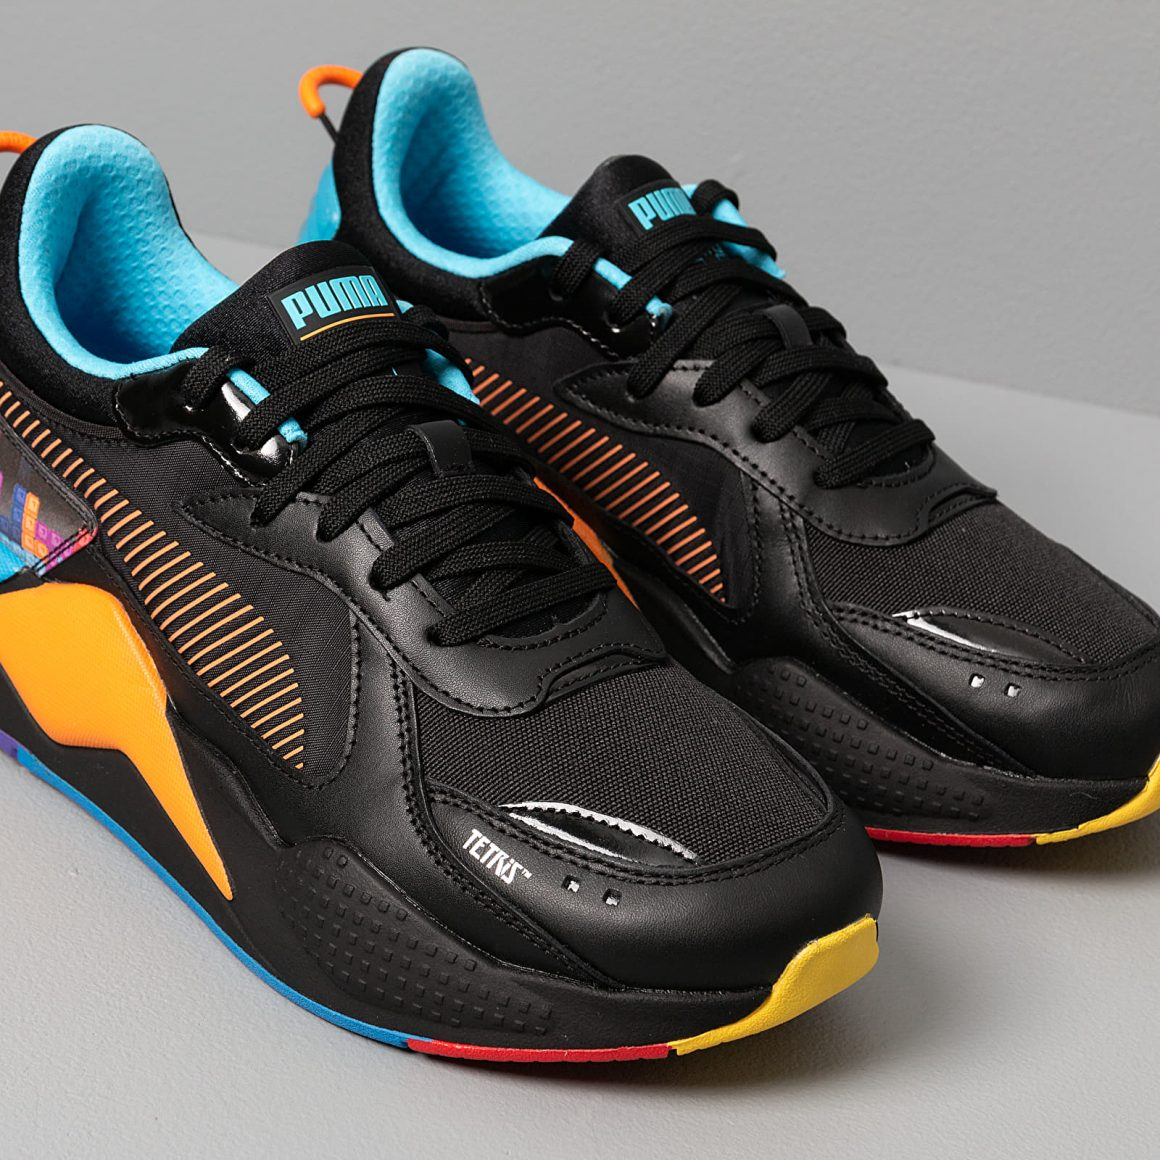 Tetris x PUMA RS-X ''Black/Luminous Blue''